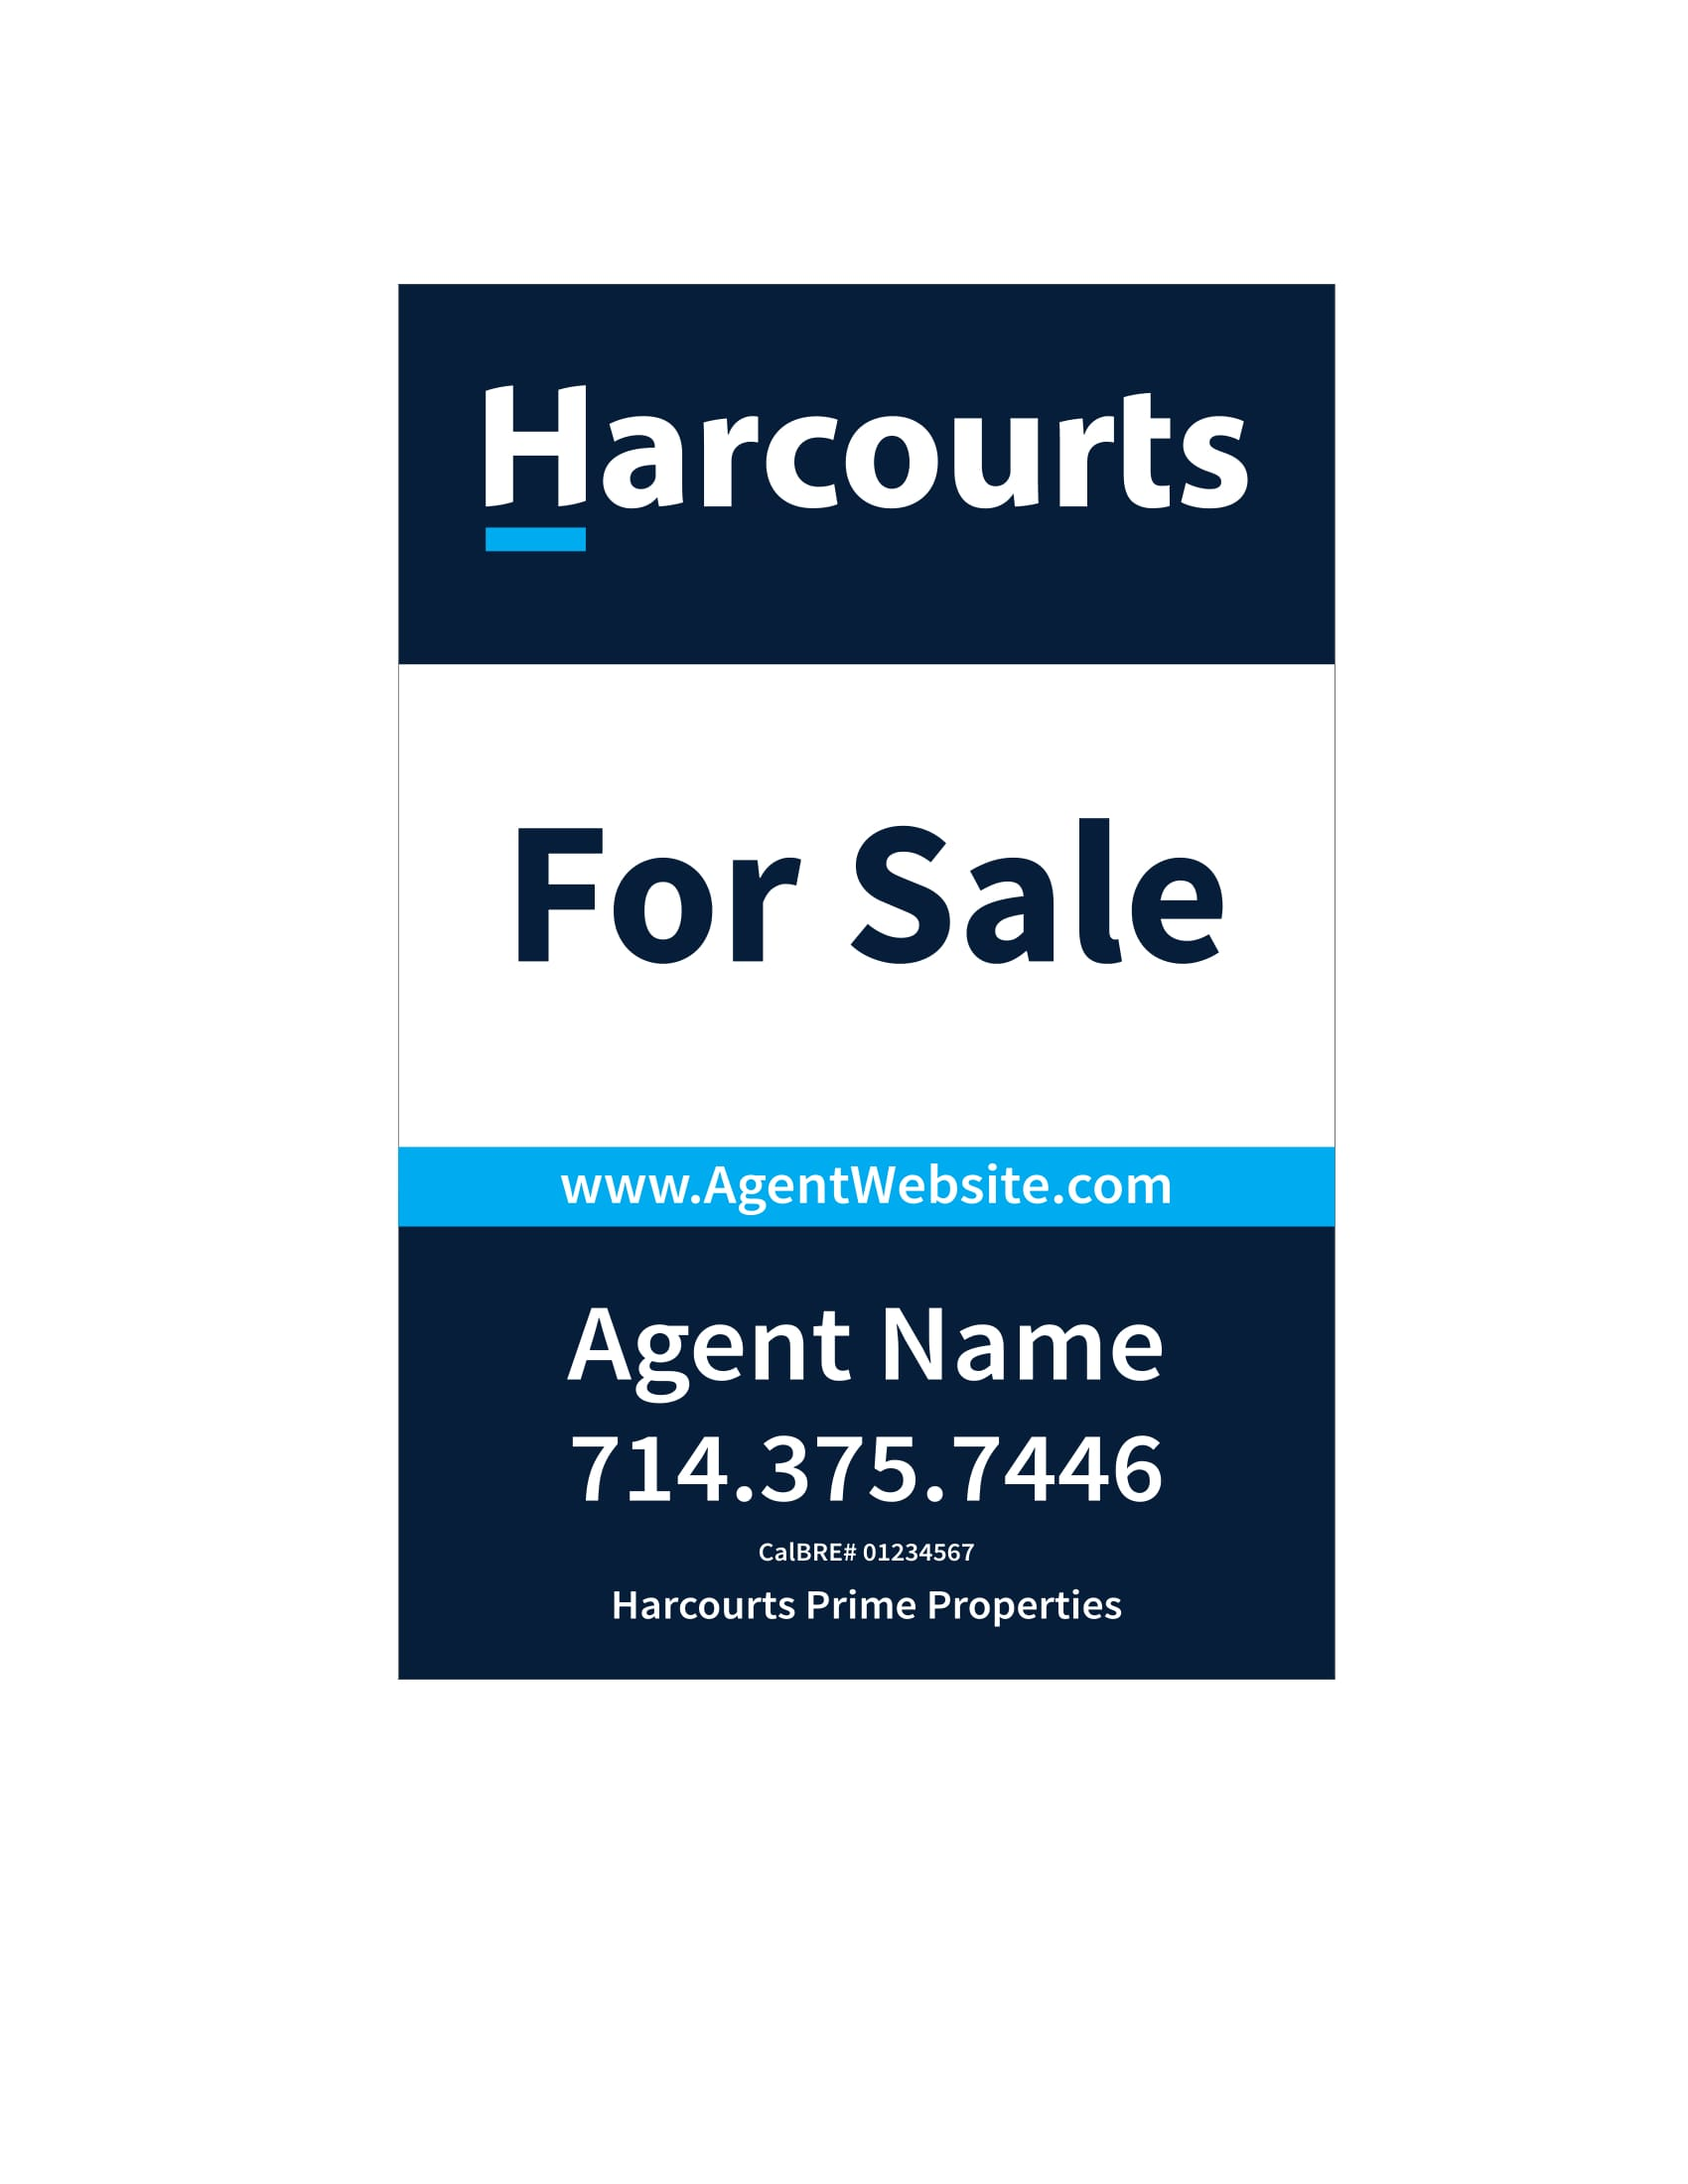 Harcourts For Sale signs